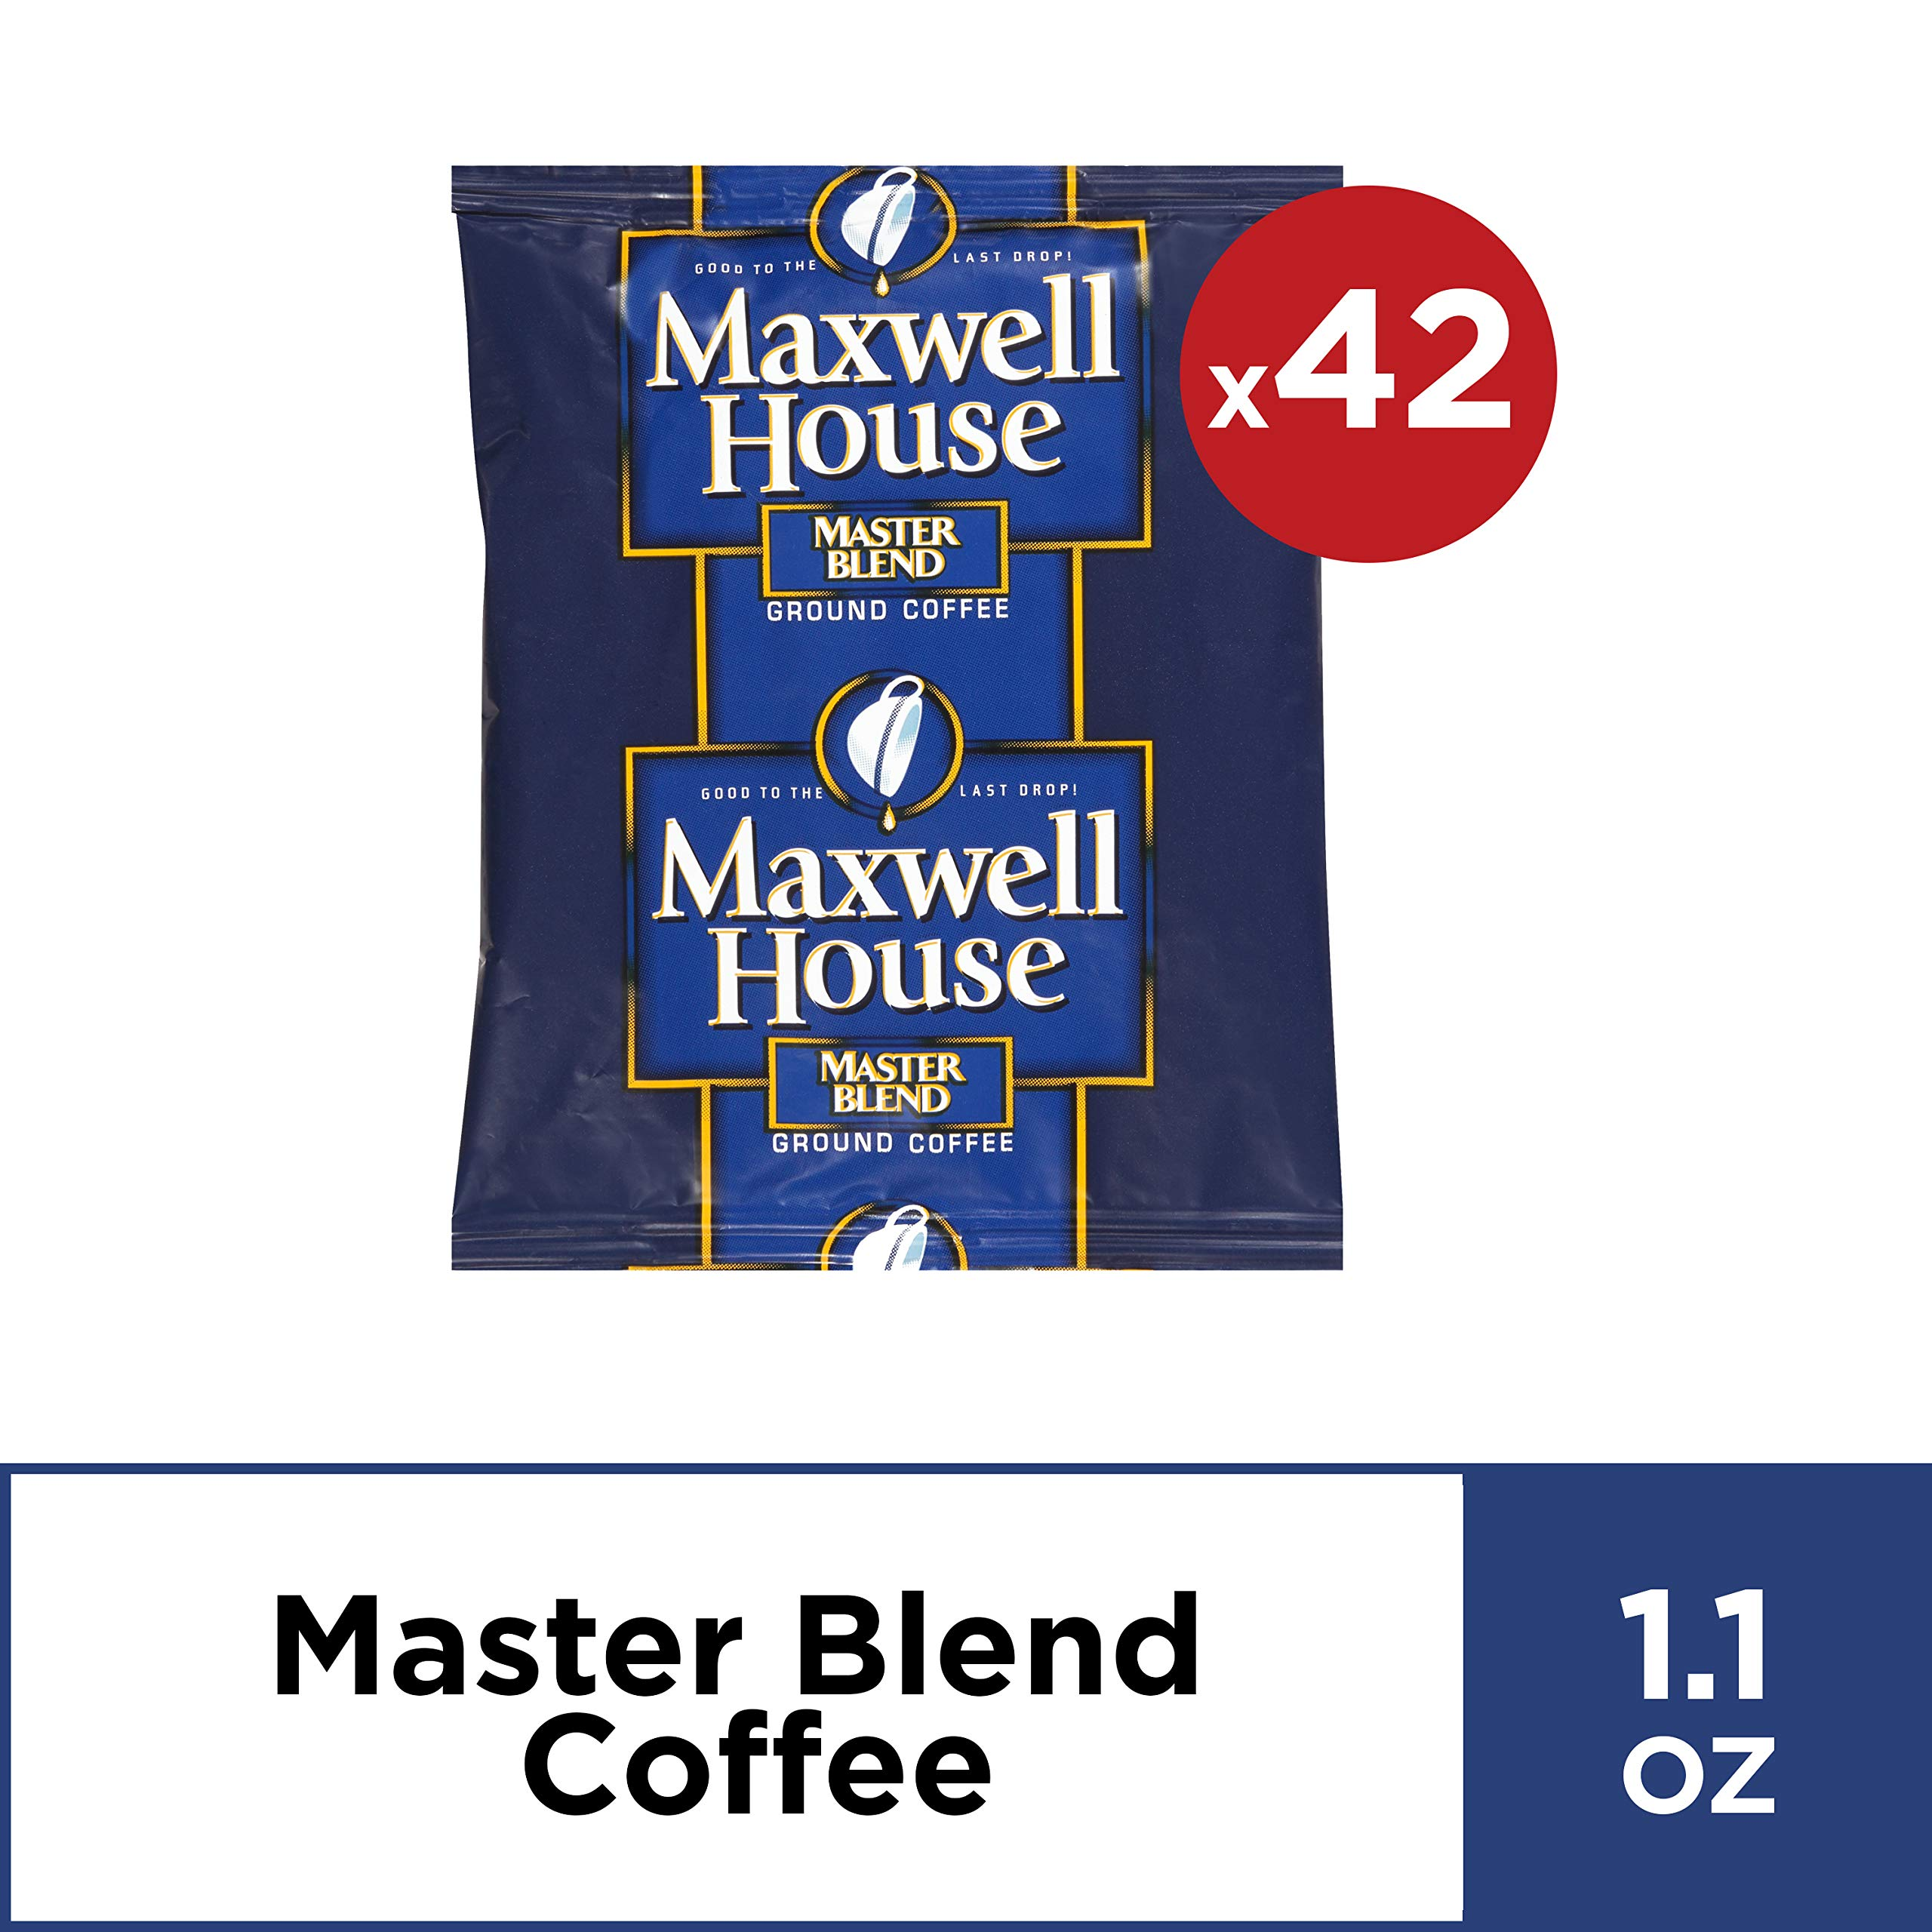 Maxwell House Master Blend Coffee Single Serve (1.1 oz Bags, Pack of 42)